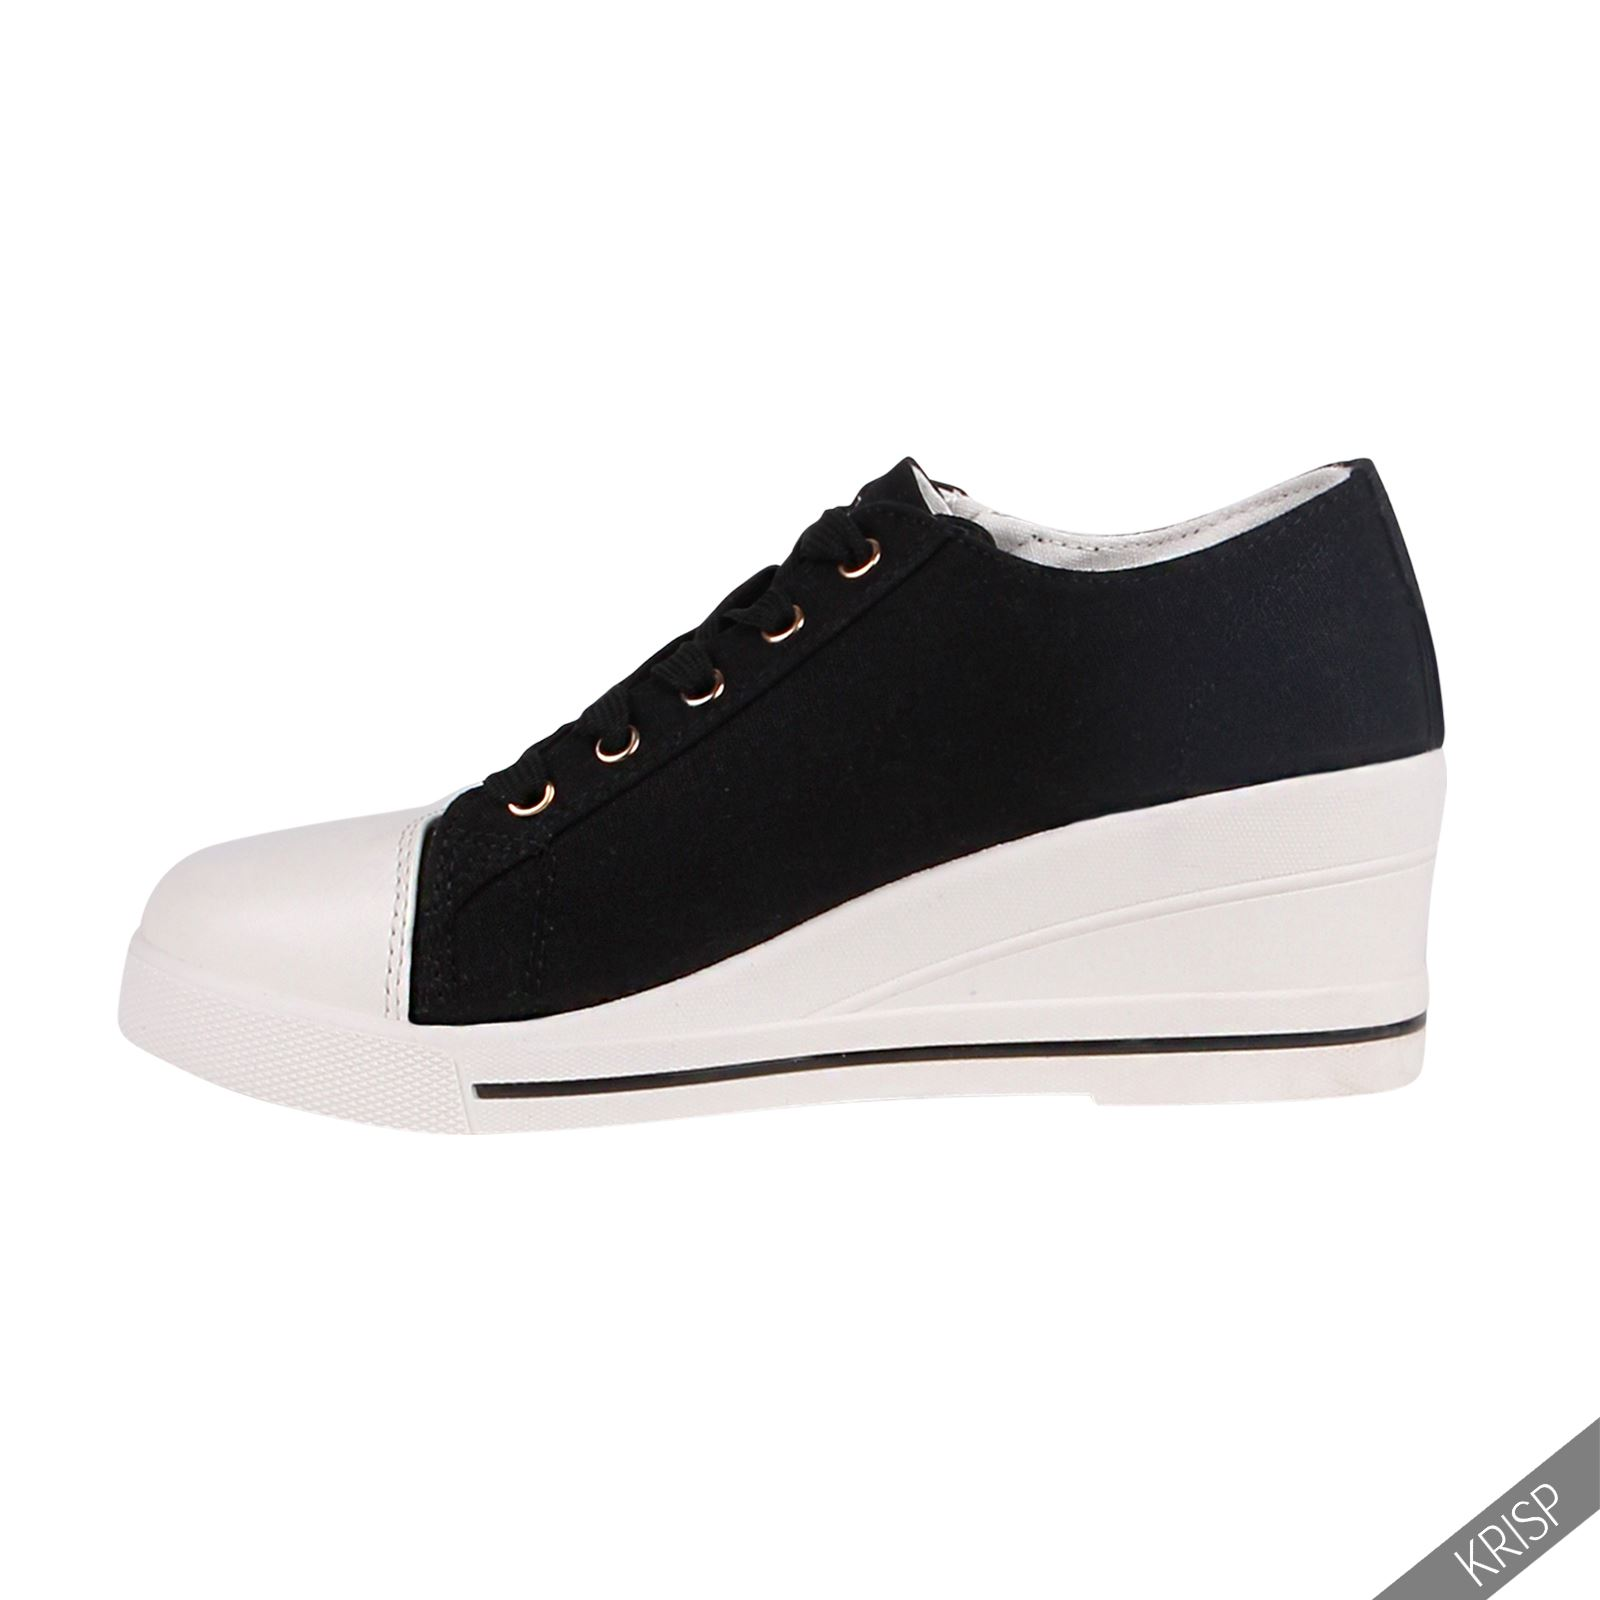 femmes baskets brillantes haut talon compens strass sneakers taille 36 41 ebay. Black Bedroom Furniture Sets. Home Design Ideas